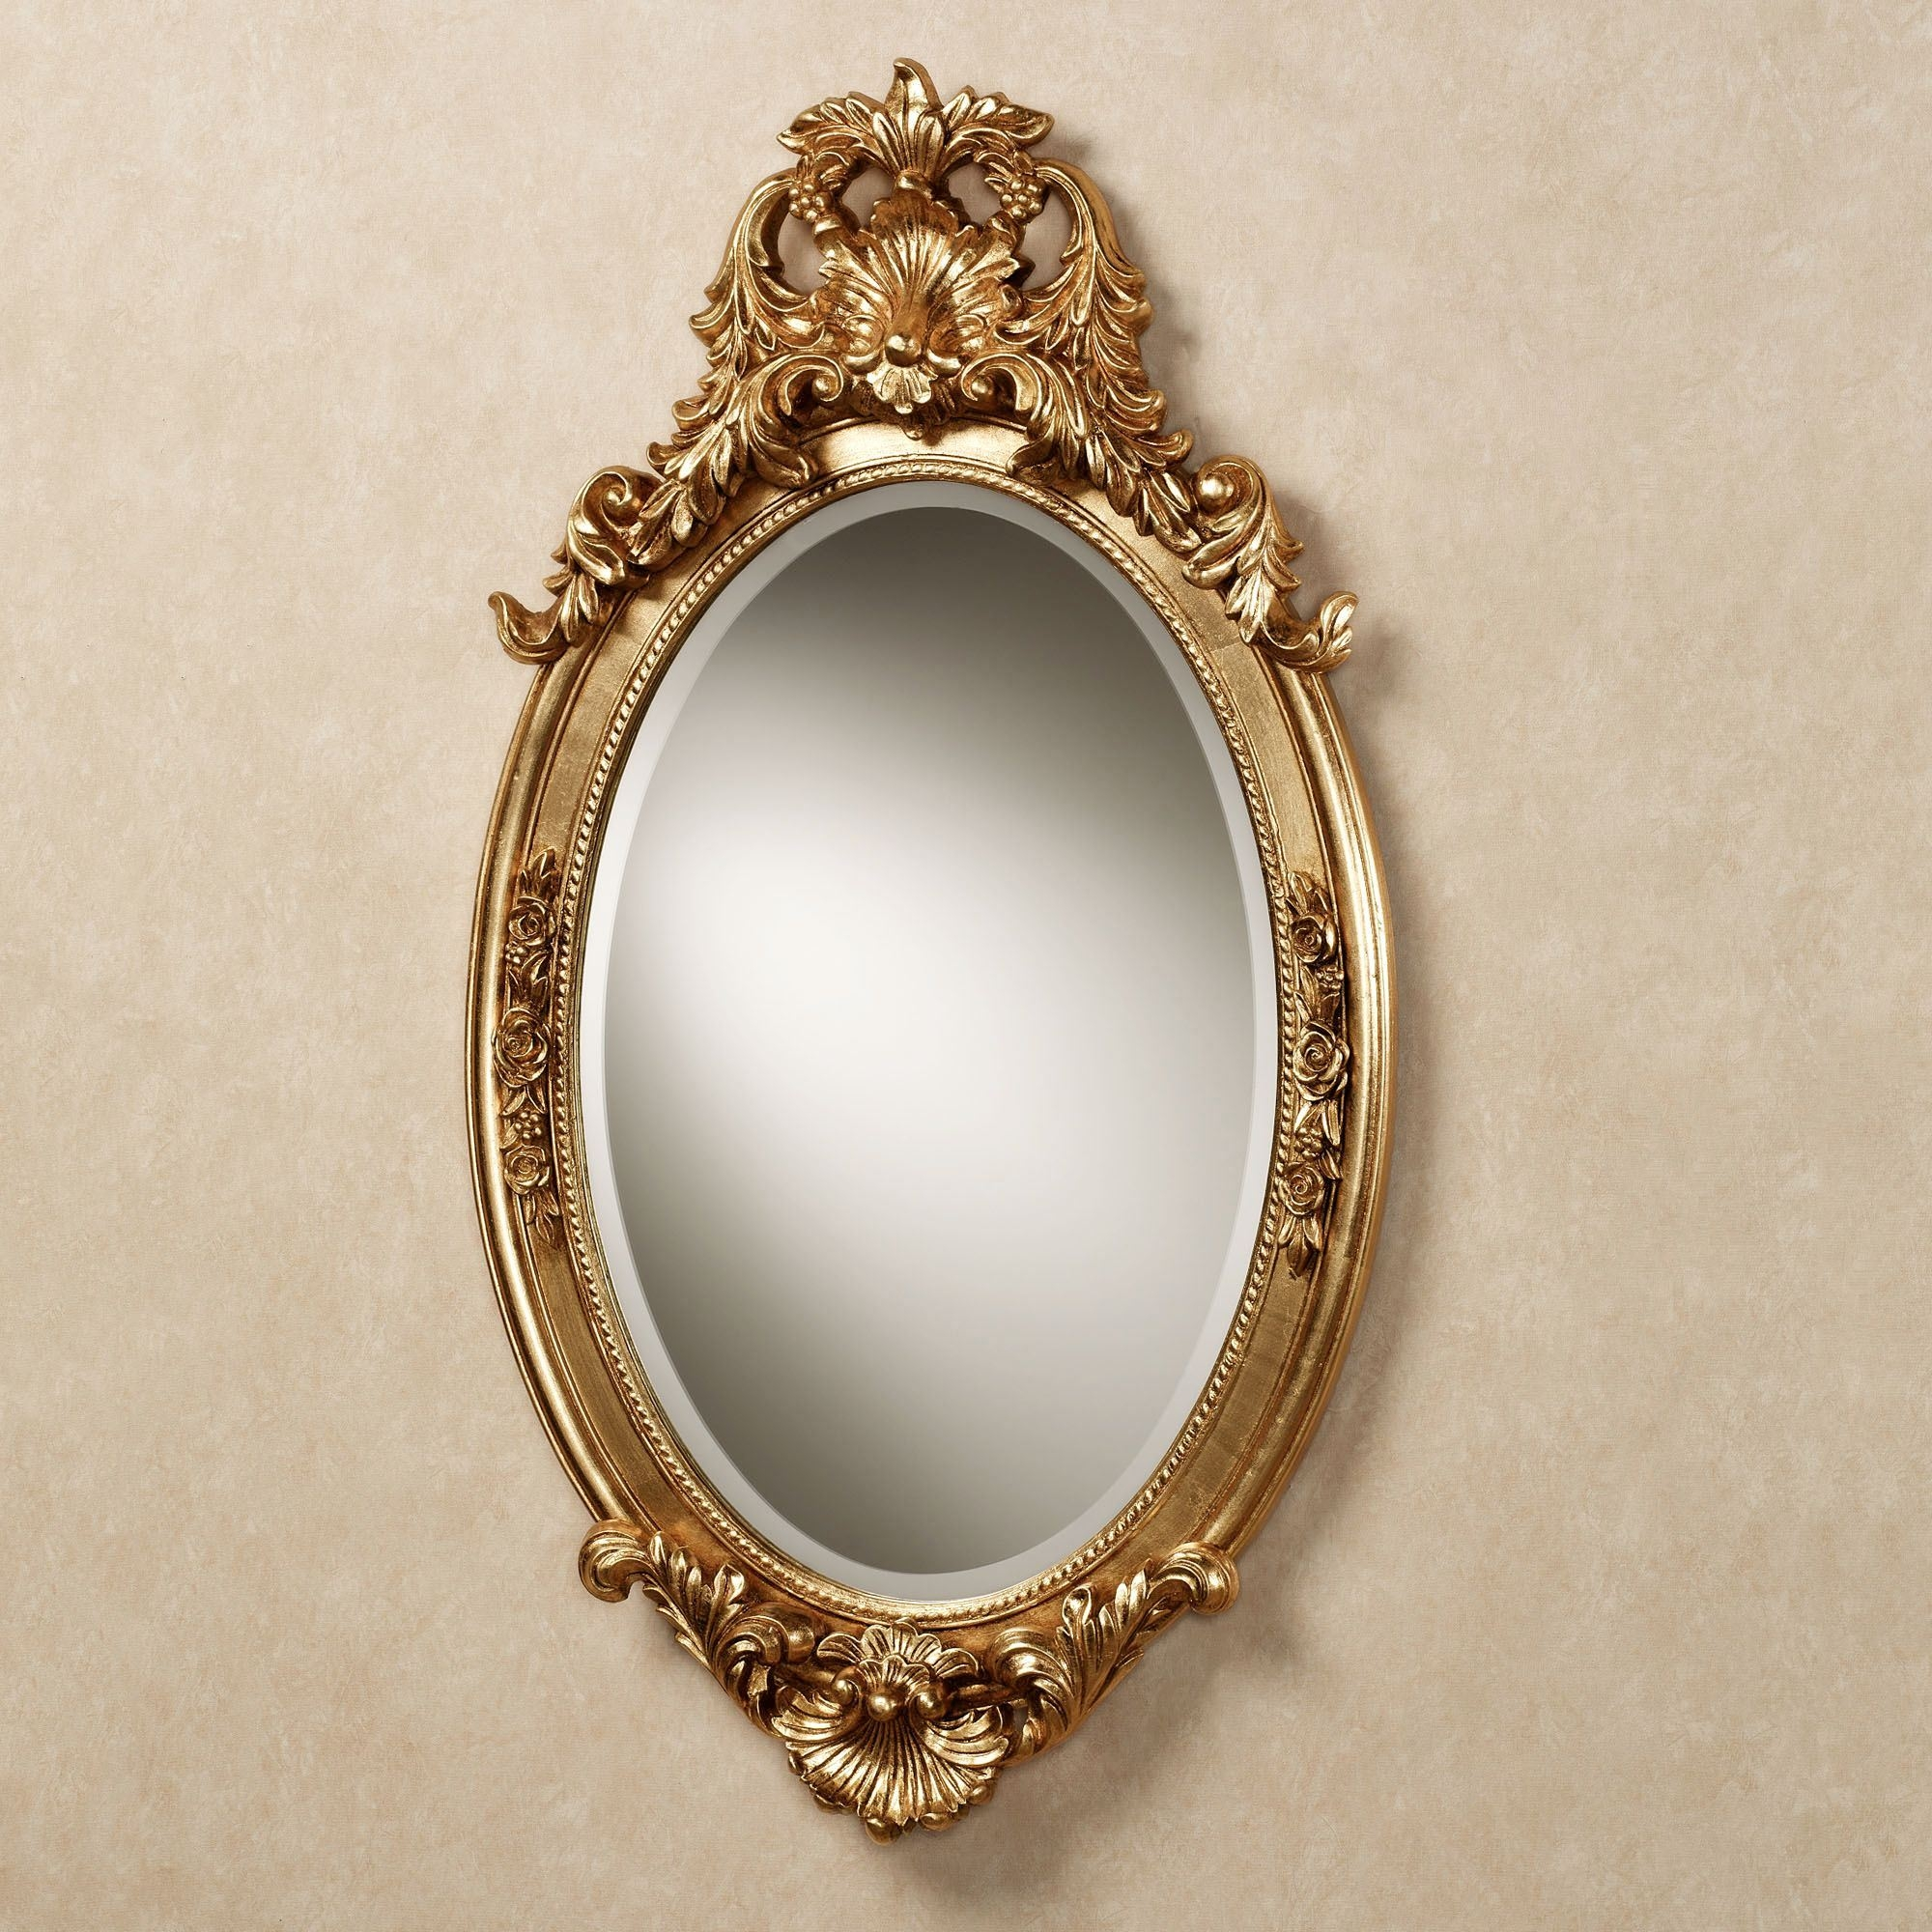 Hallandale Acanthus Leaf Oval Wall Mirror For Oval Wall Mirrors (Image 4 of 15)